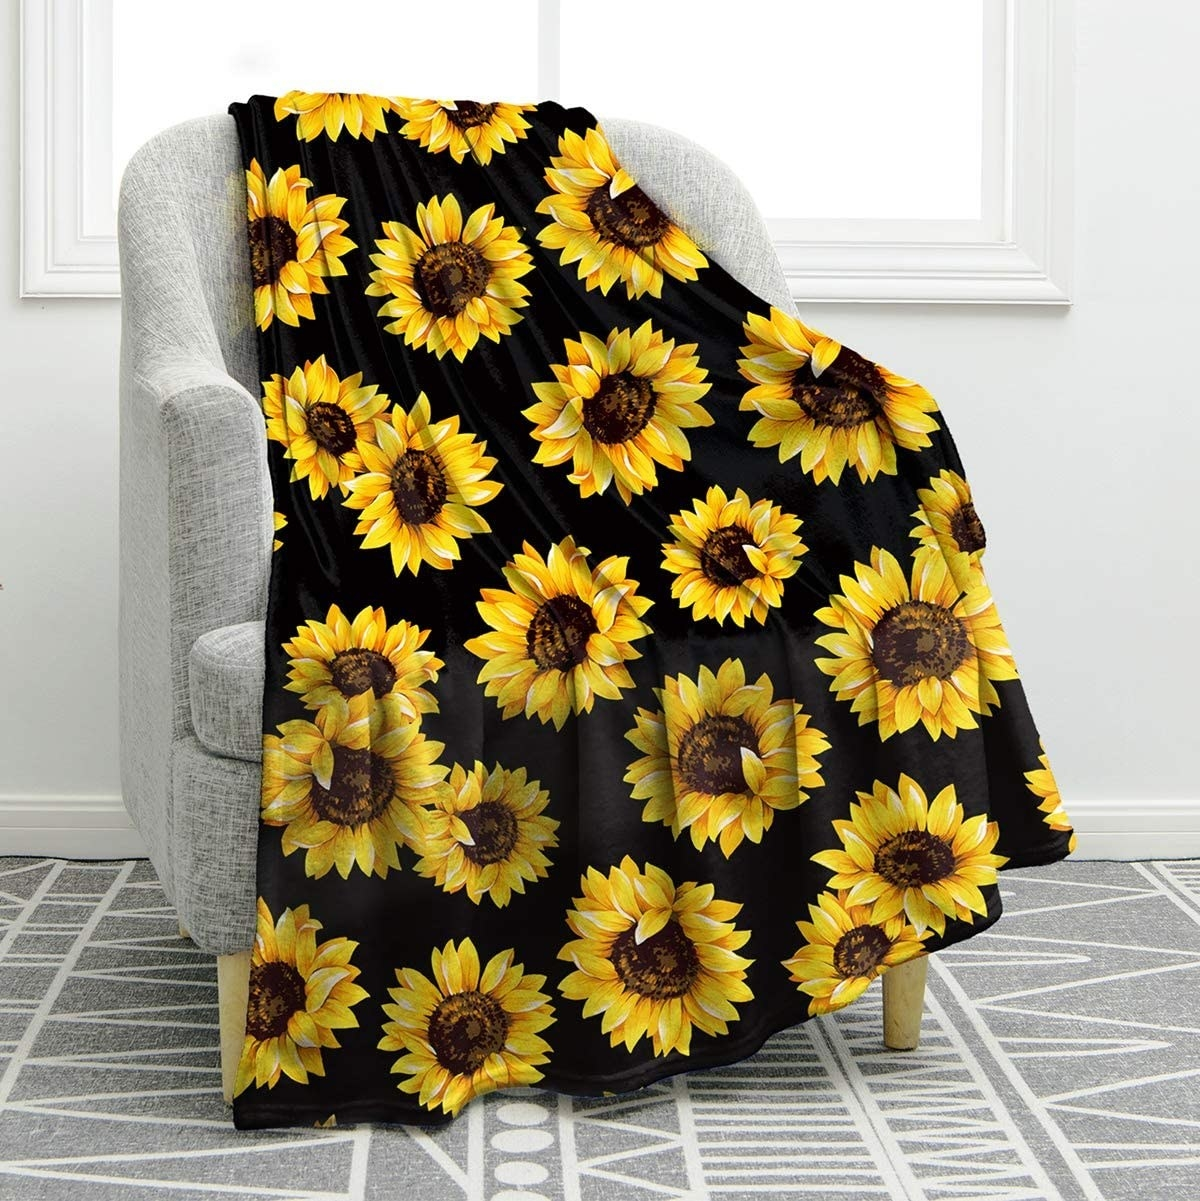 The blanket with a sunflower pattern draped over a chair